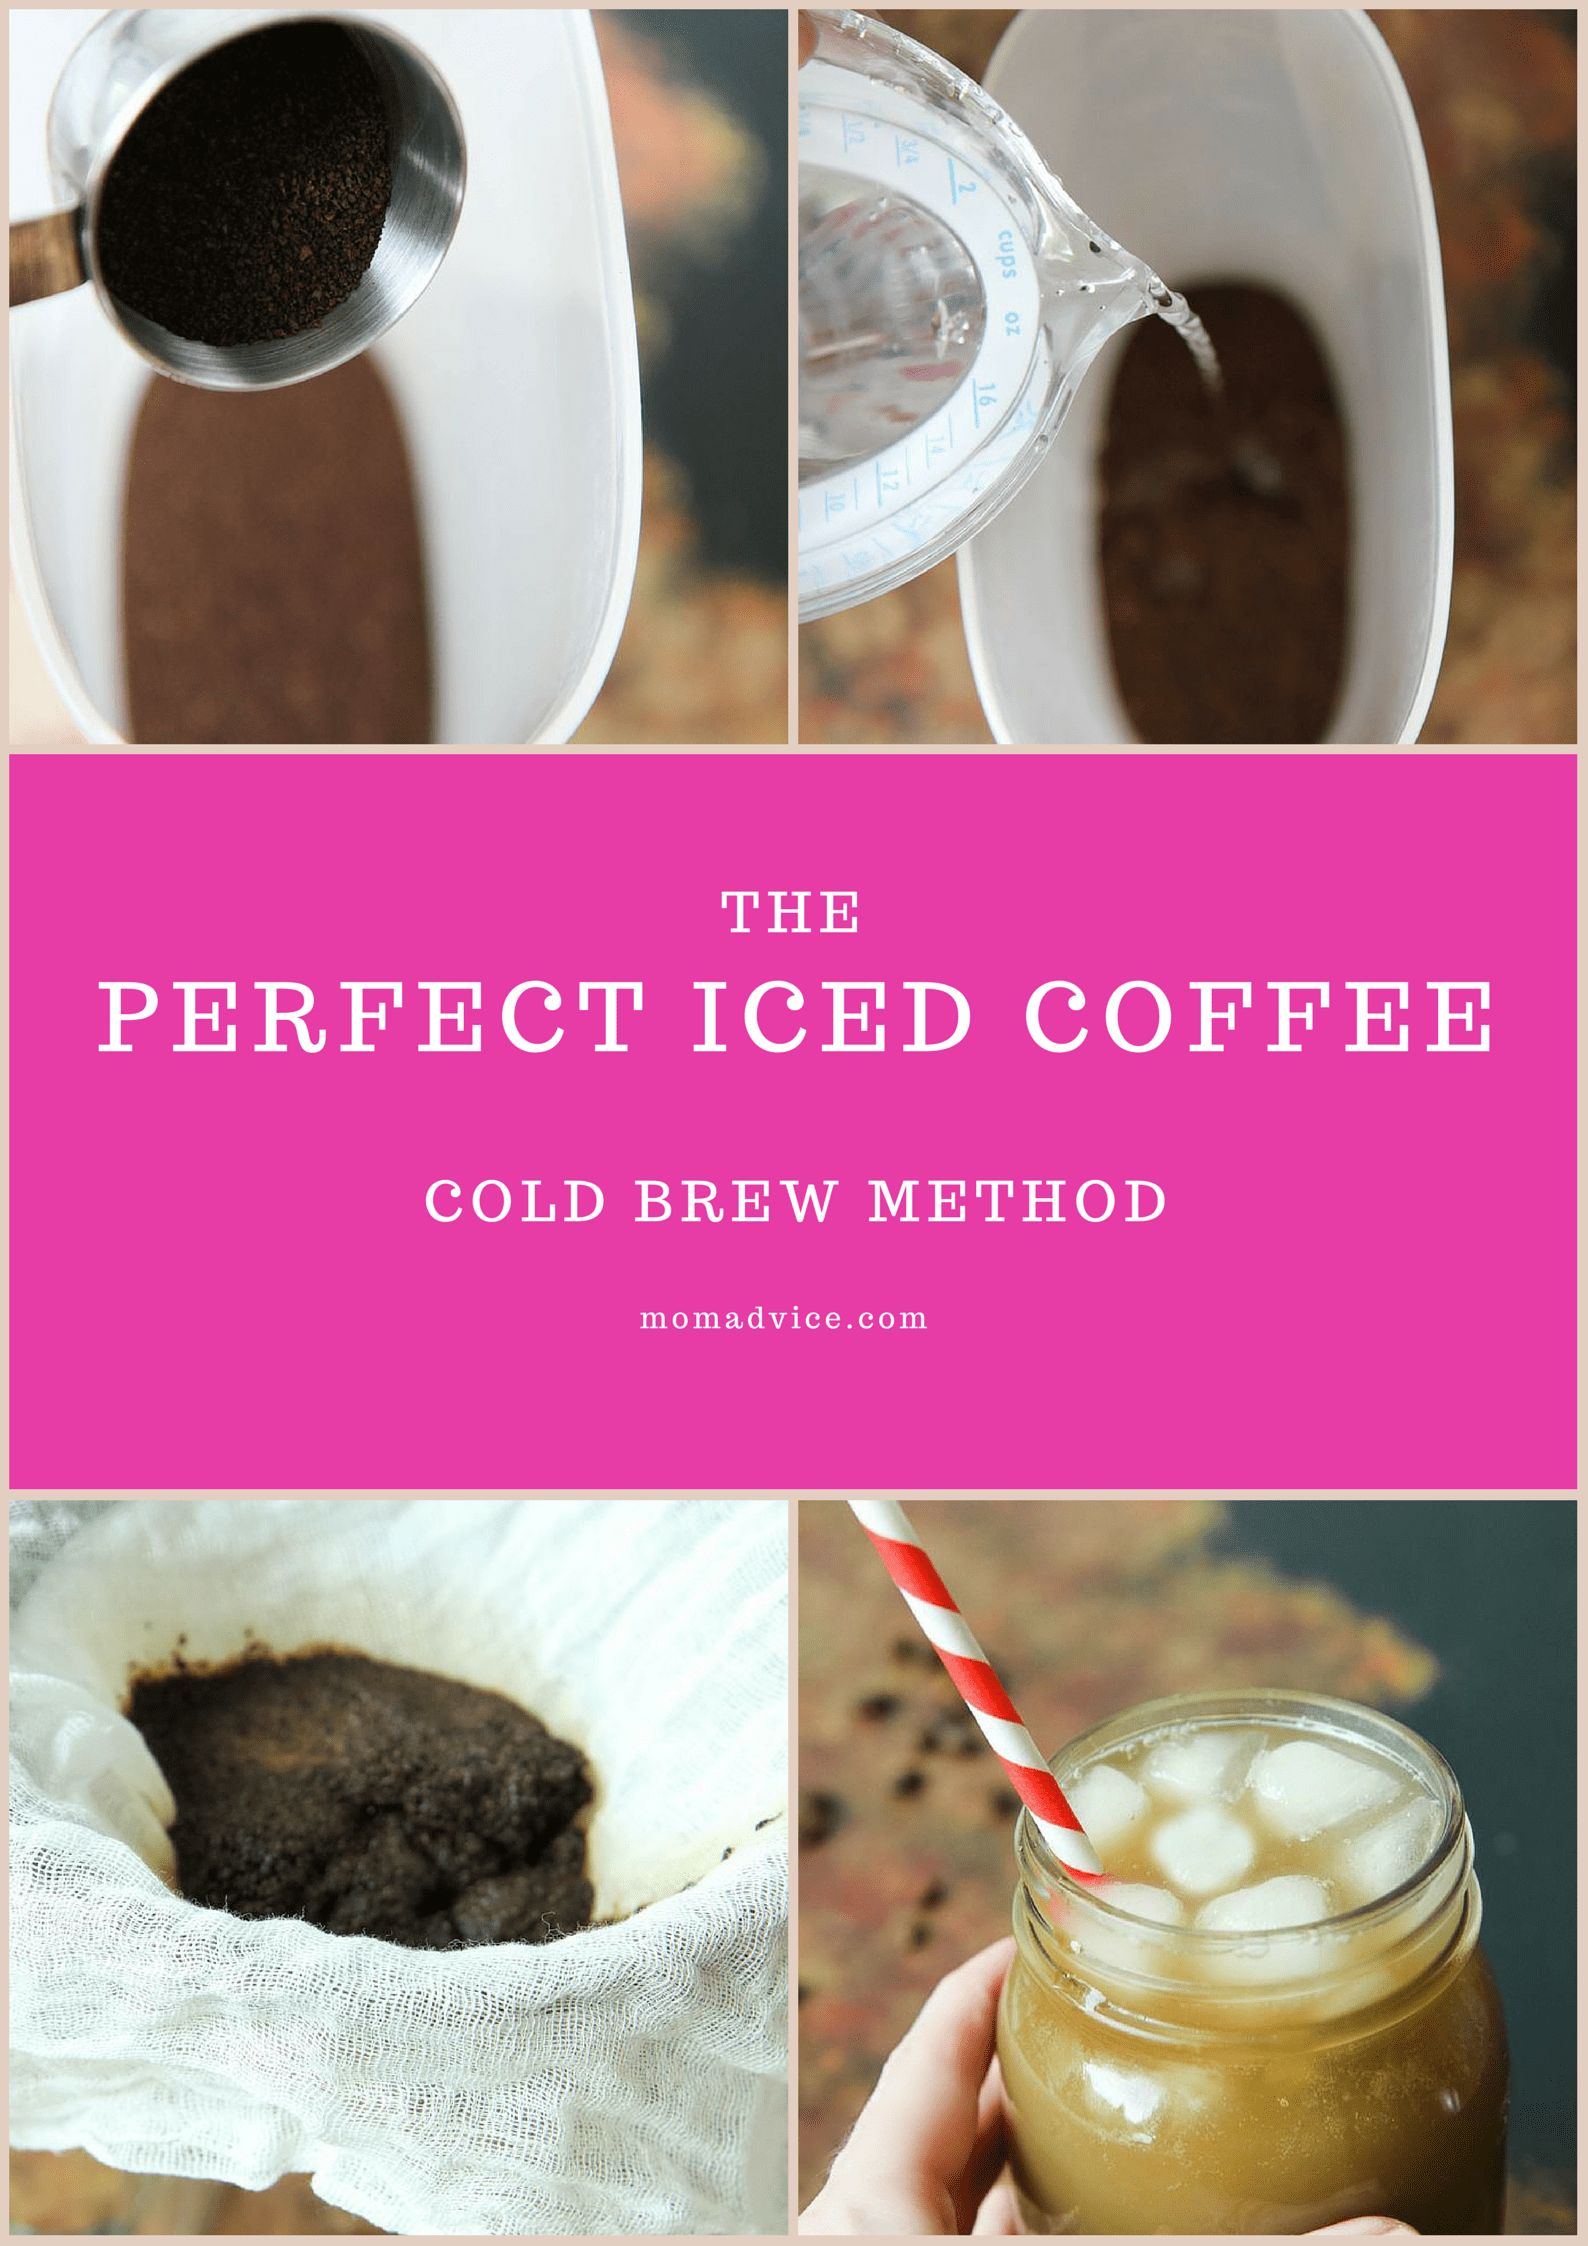 How to Cold Brew Coffee from MomAdvice.com